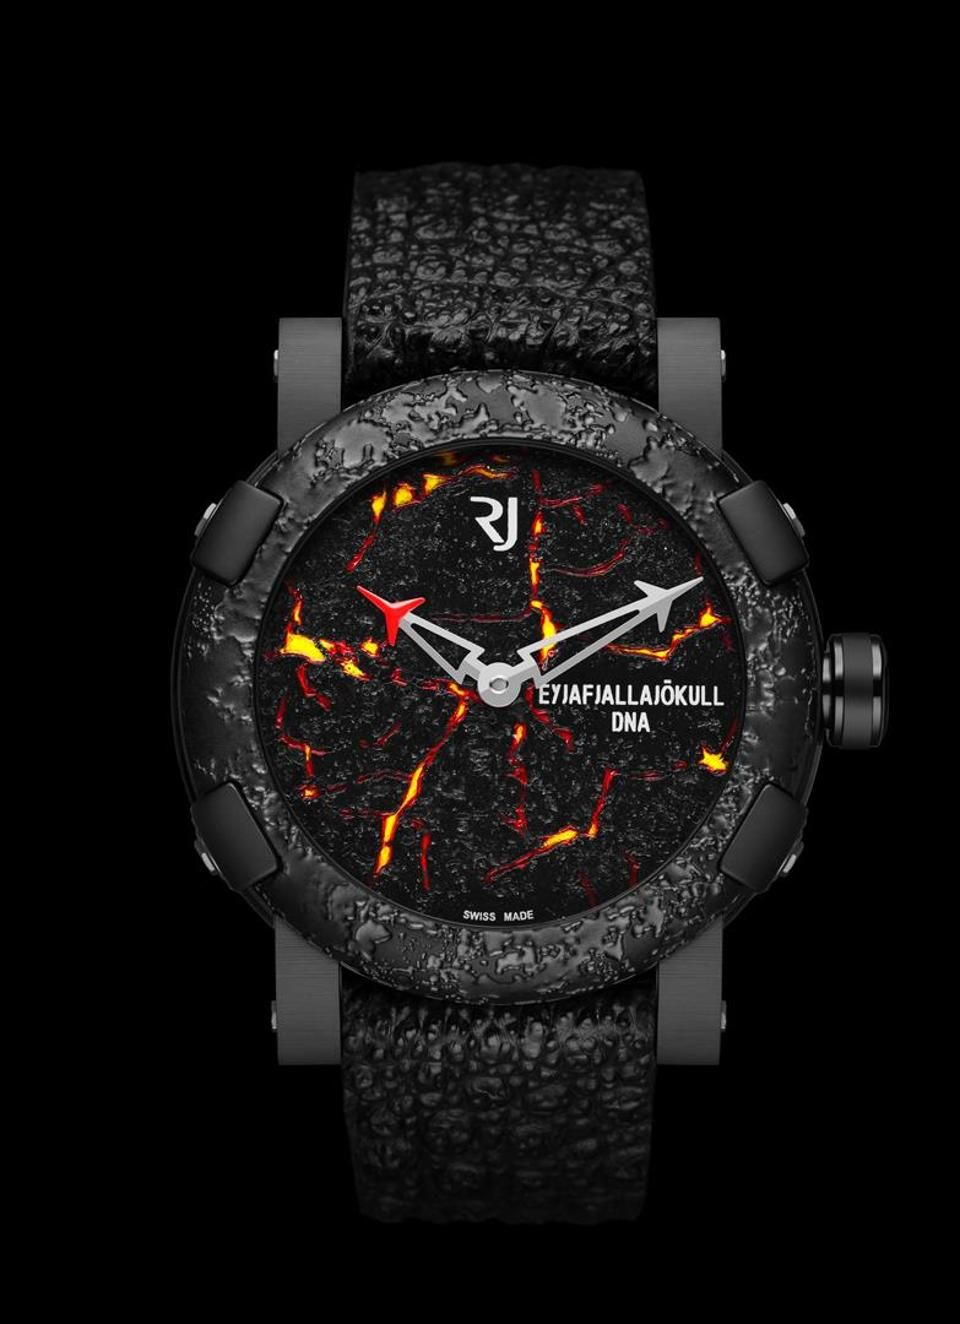 8 Spectacular And Truly Unique Watches Making Debuts At SIHH 2017